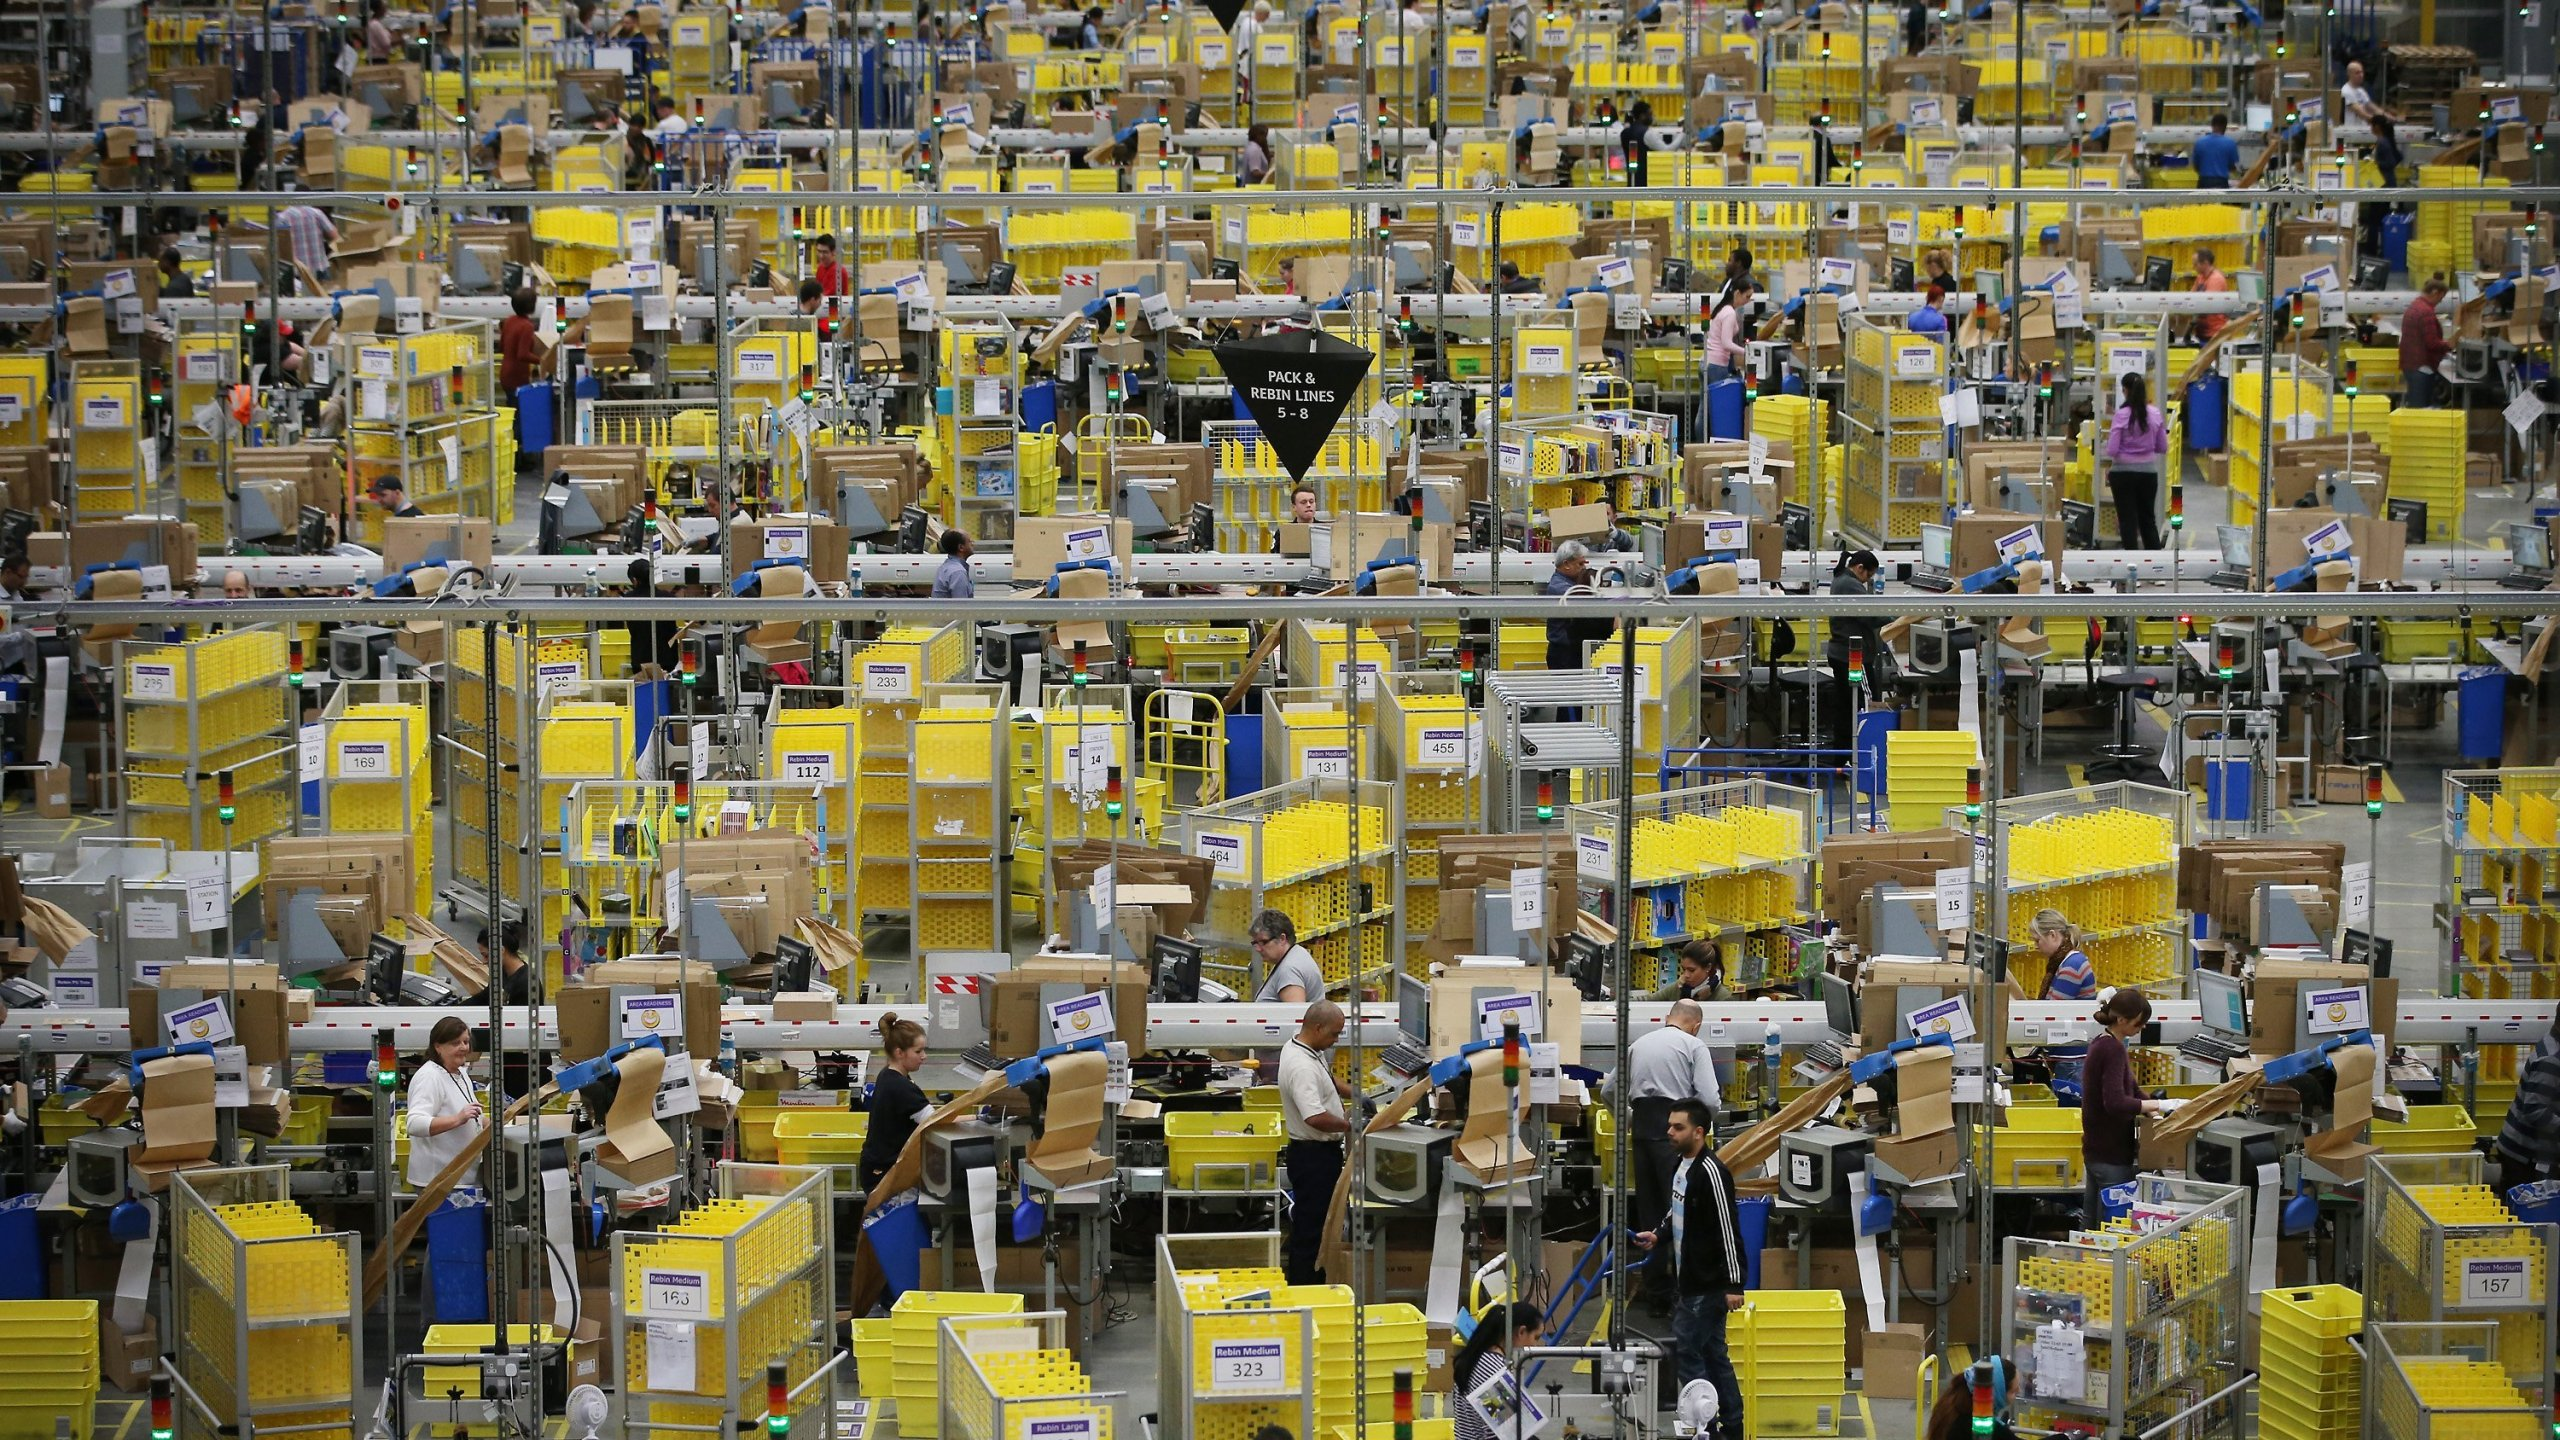 An Amazon warehouse is pictured. (Credit: CNN)